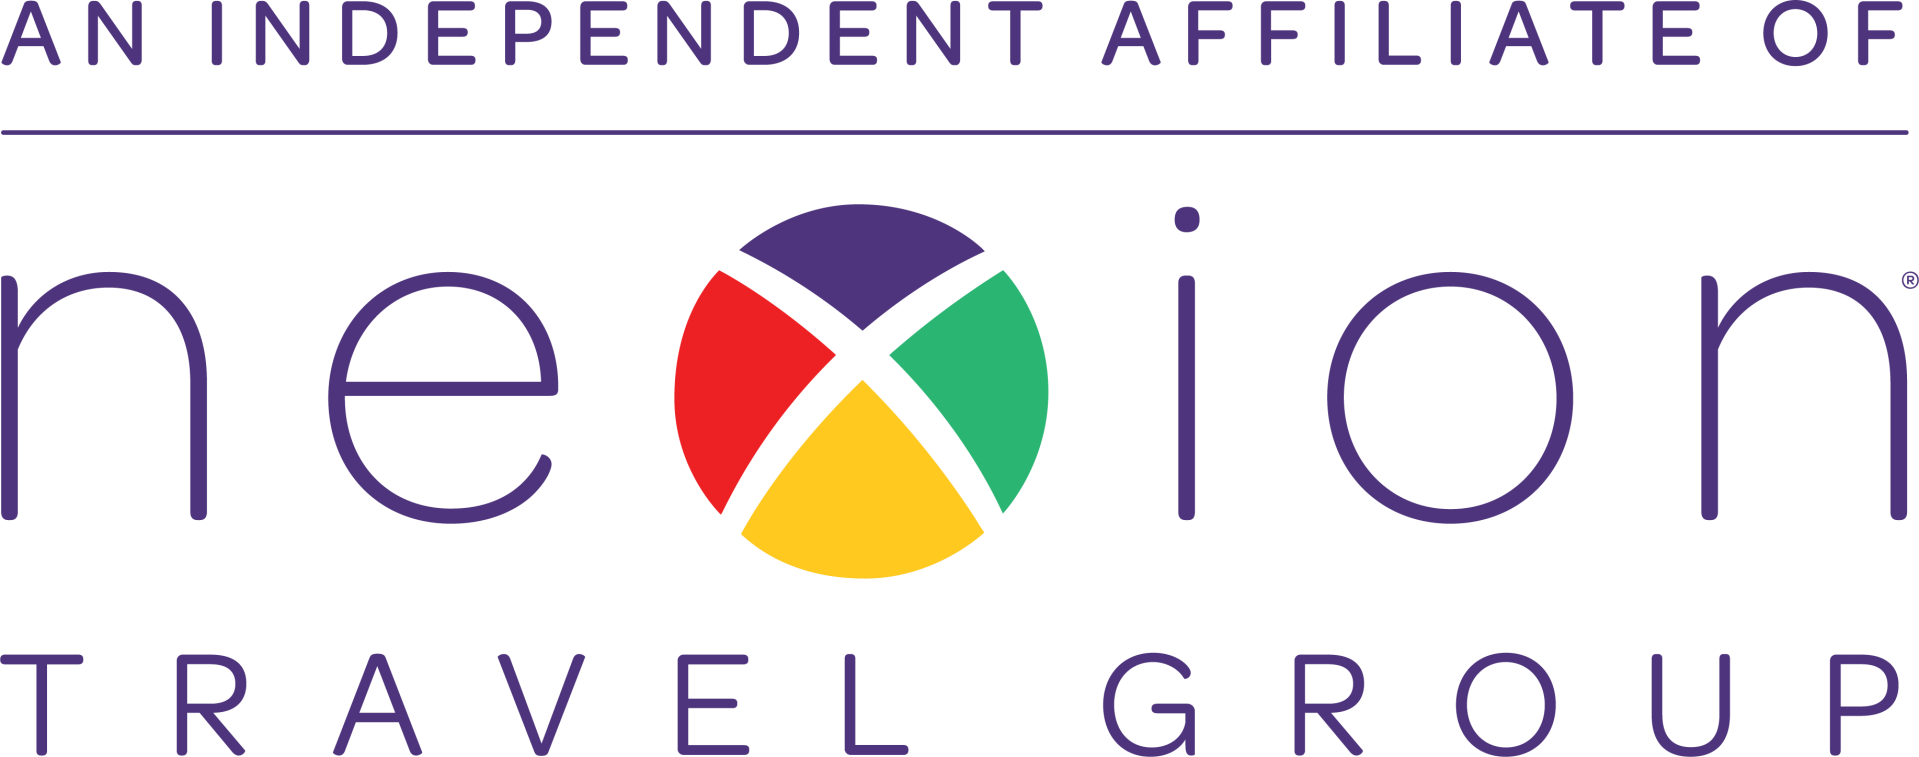 Nexion Travel Group (NTG) Independent Affiliate Logo